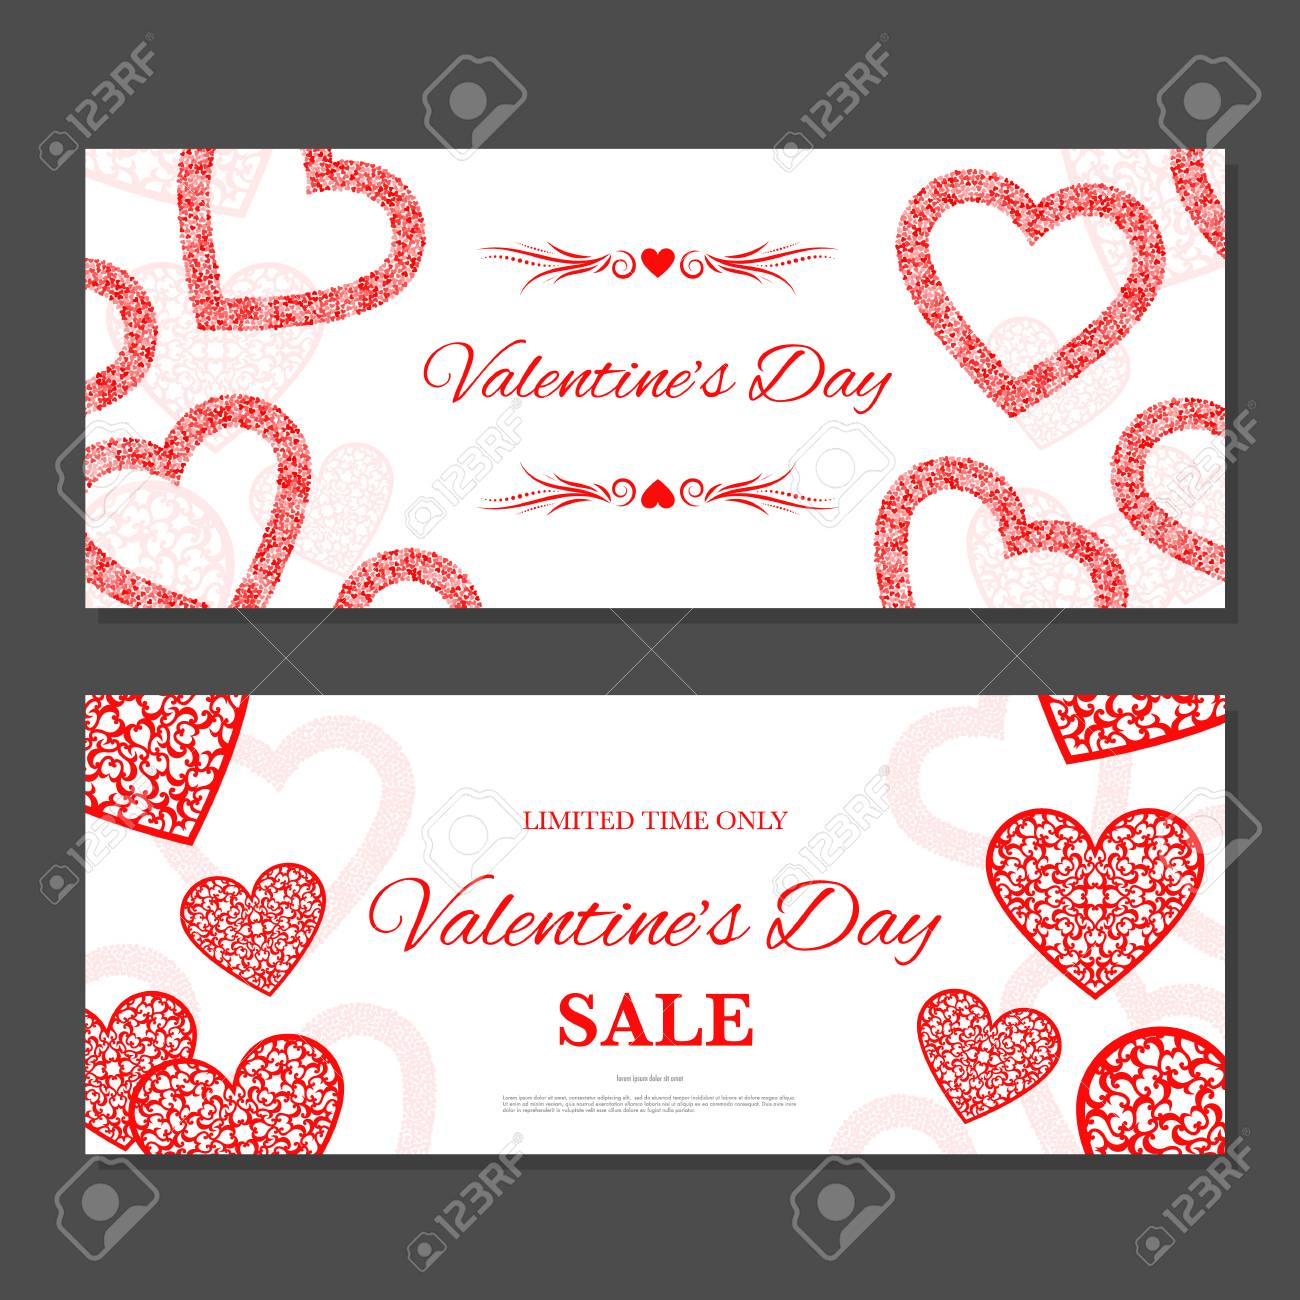 Valentine S Day Gift Coupon Gift Voucher Template With Red Hearts